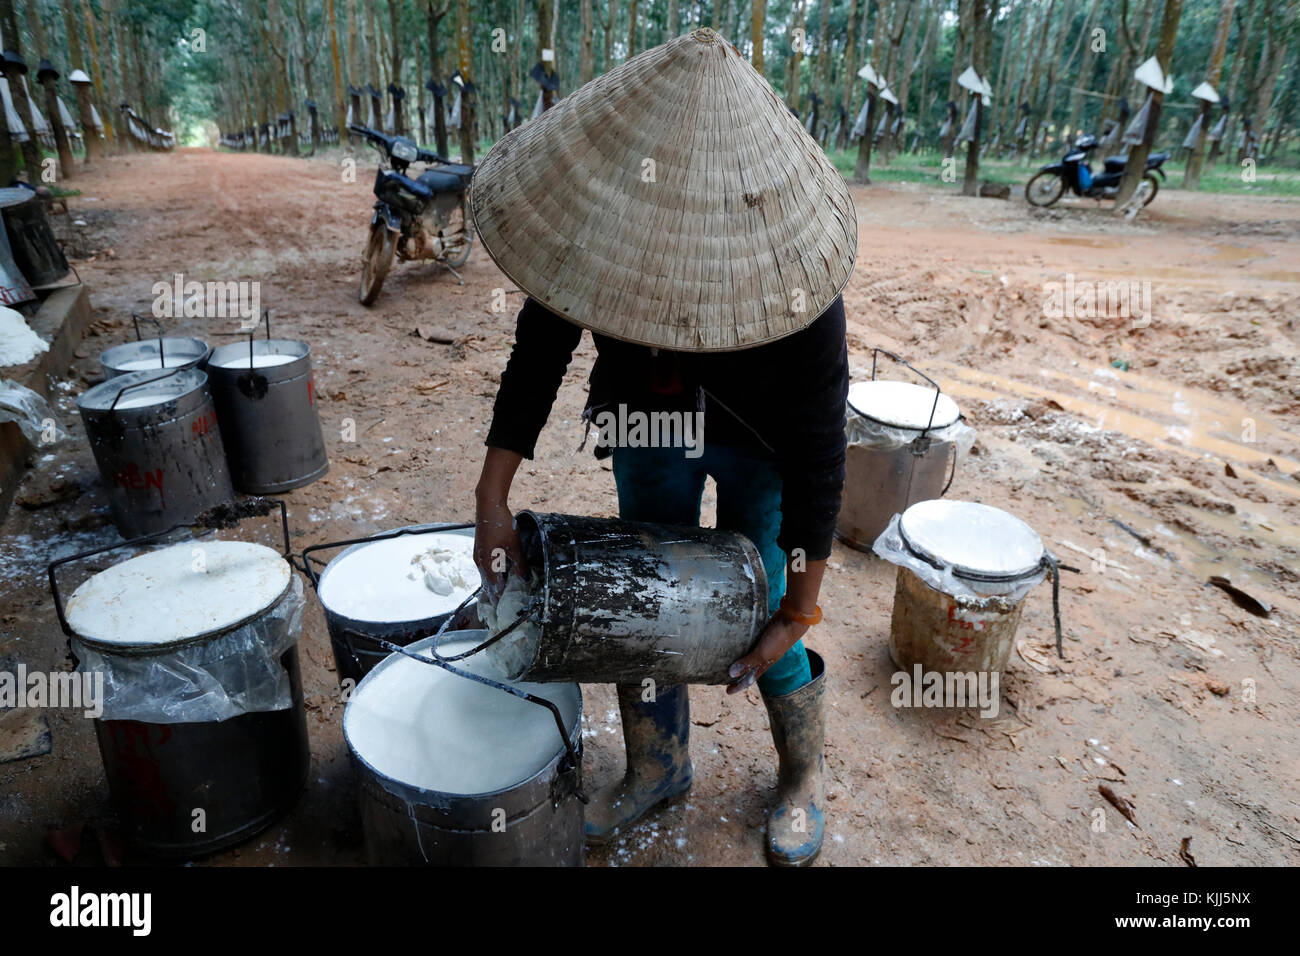 Rubber Tree Latex Collection And Rubber Production.  Kon Tum. Vietnam. - Stock Image